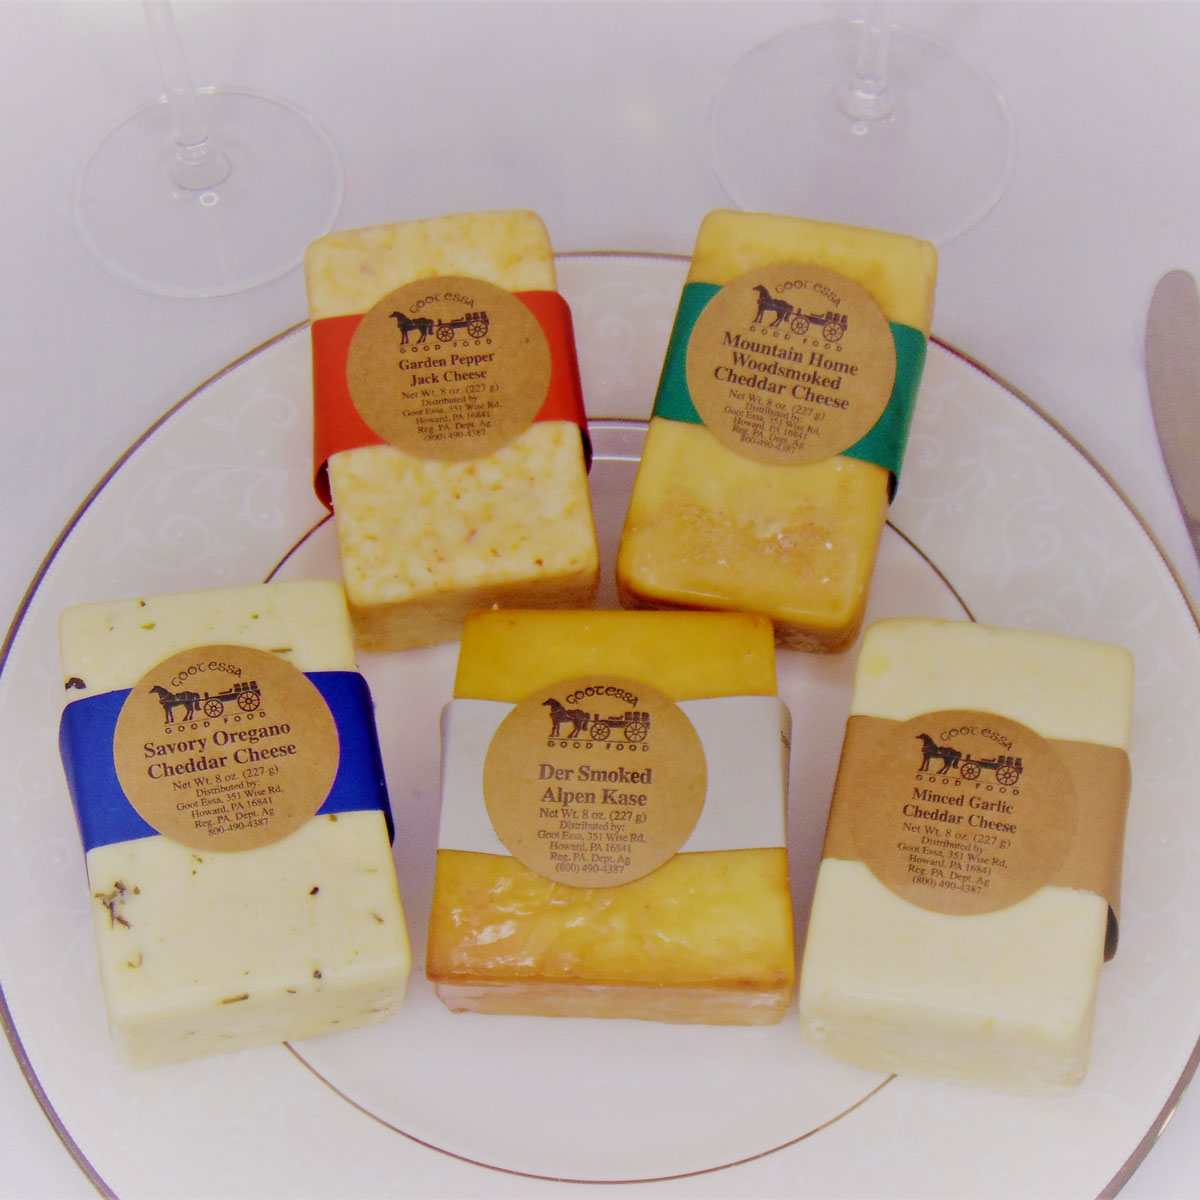 Flavored Cheese Pairing